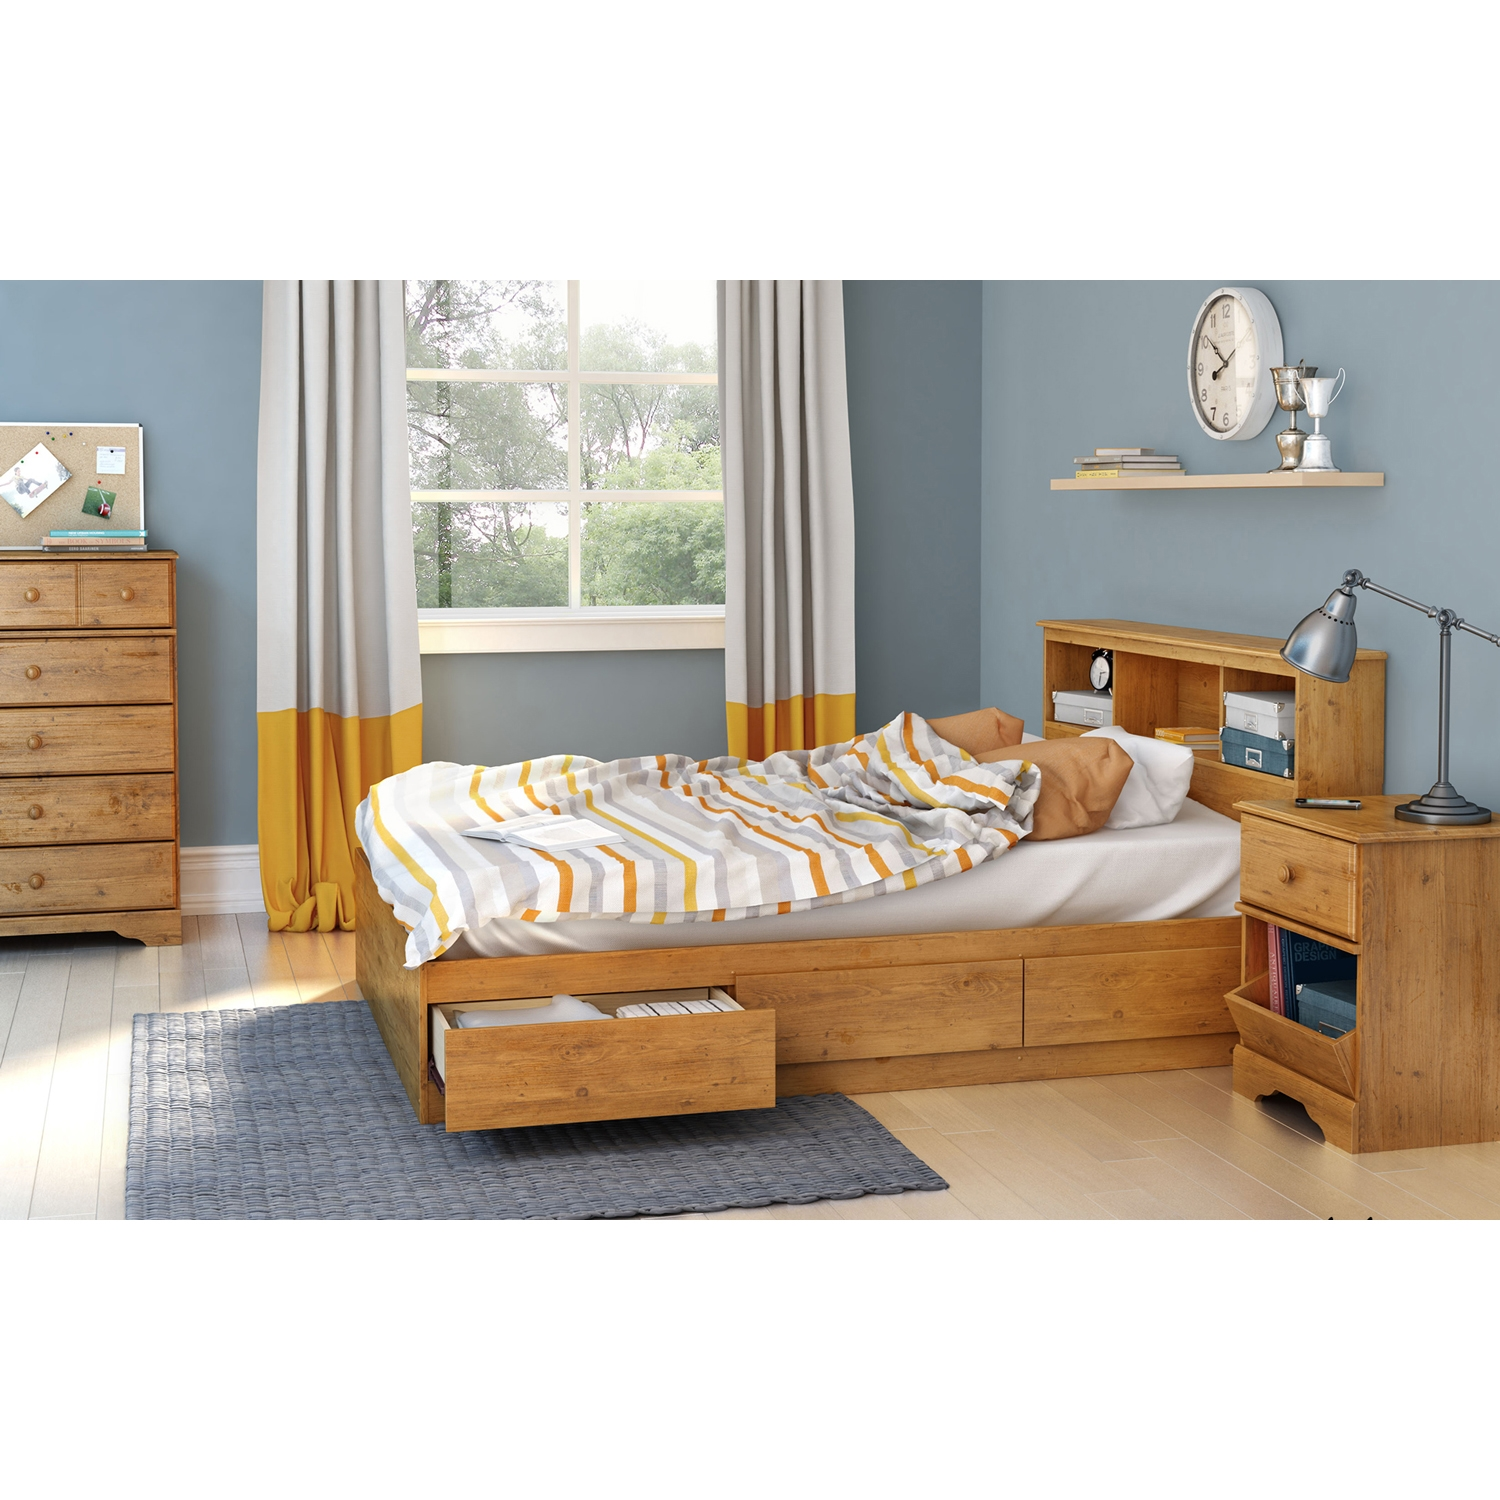 Little Treasures Full Bookcase Headboard - Country Pine - SS-3432093